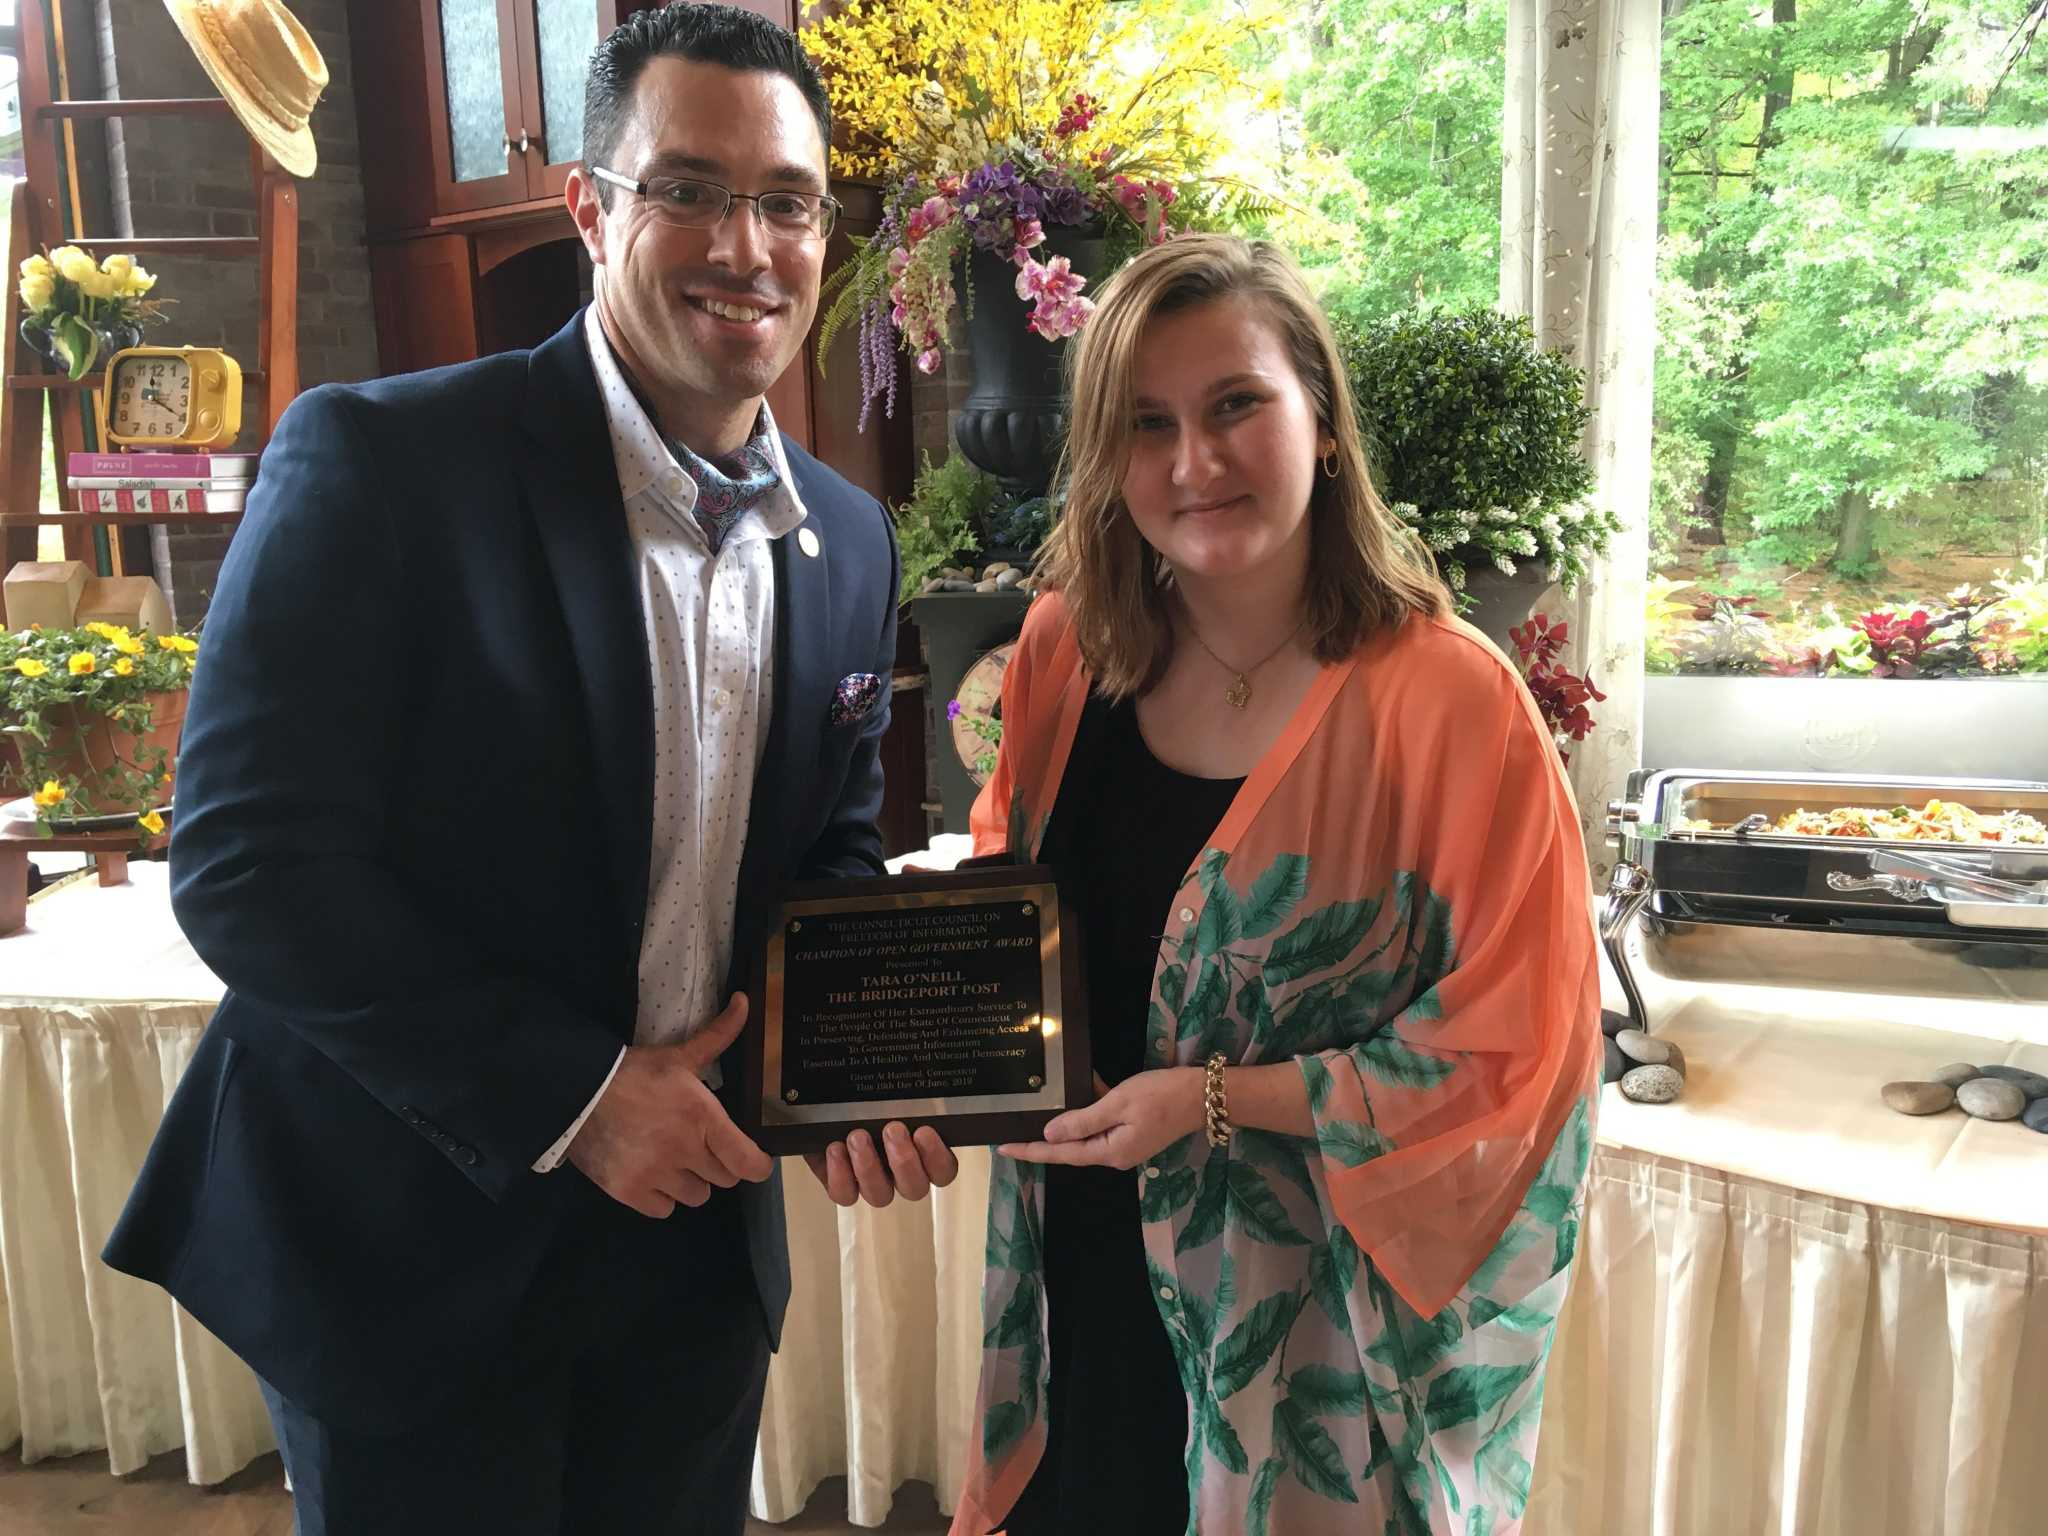 Hearst CT reporter named Champion of Open Government